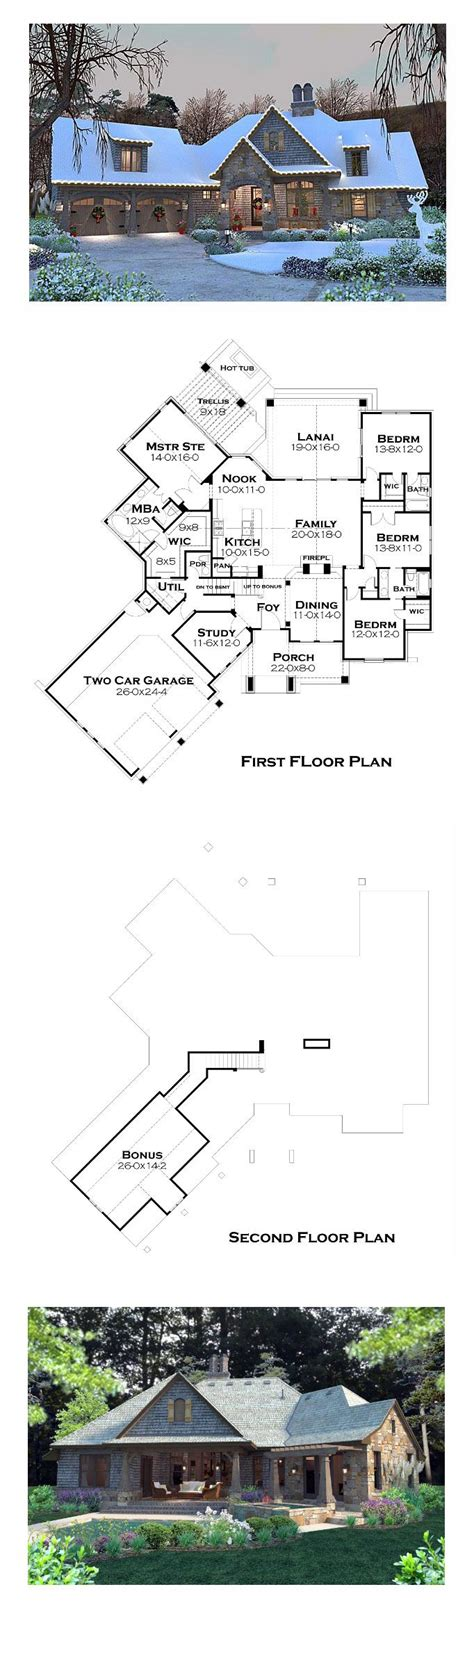 best selling floor plans best selling house plan 75134 total living area 2482 sq